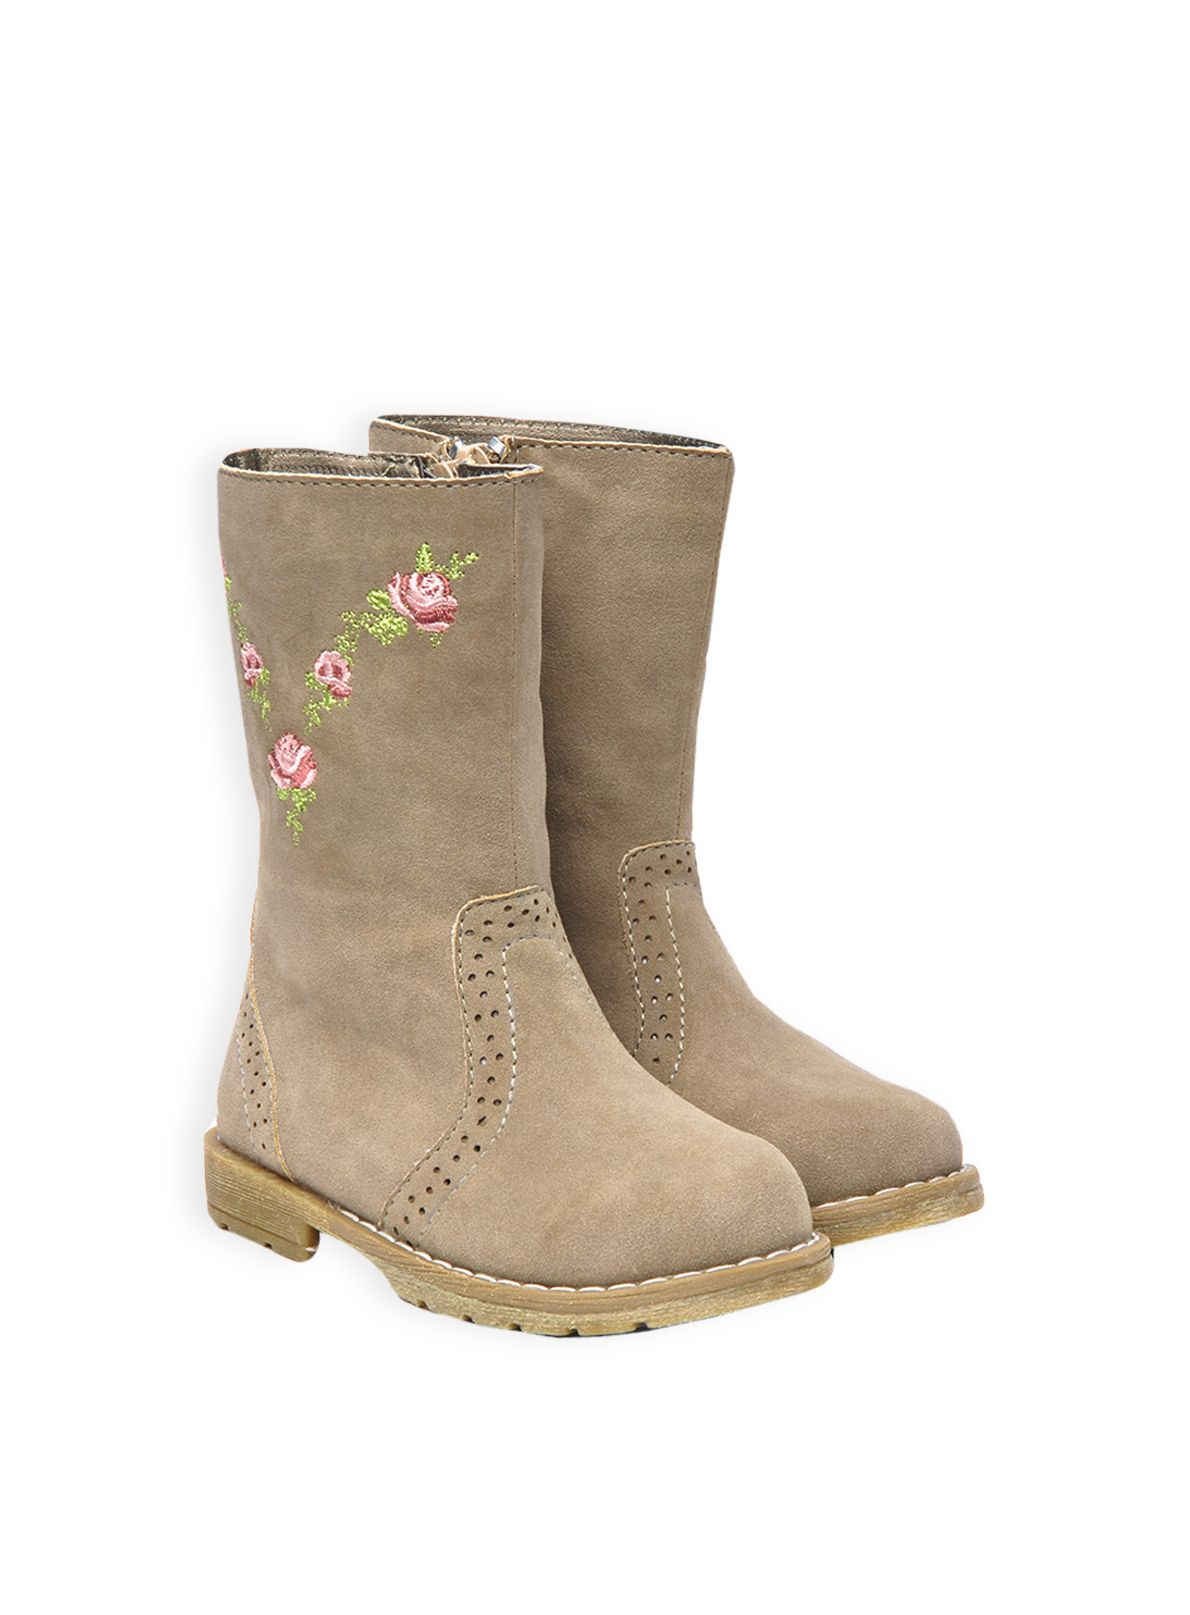 Girls embroidered blooms boot